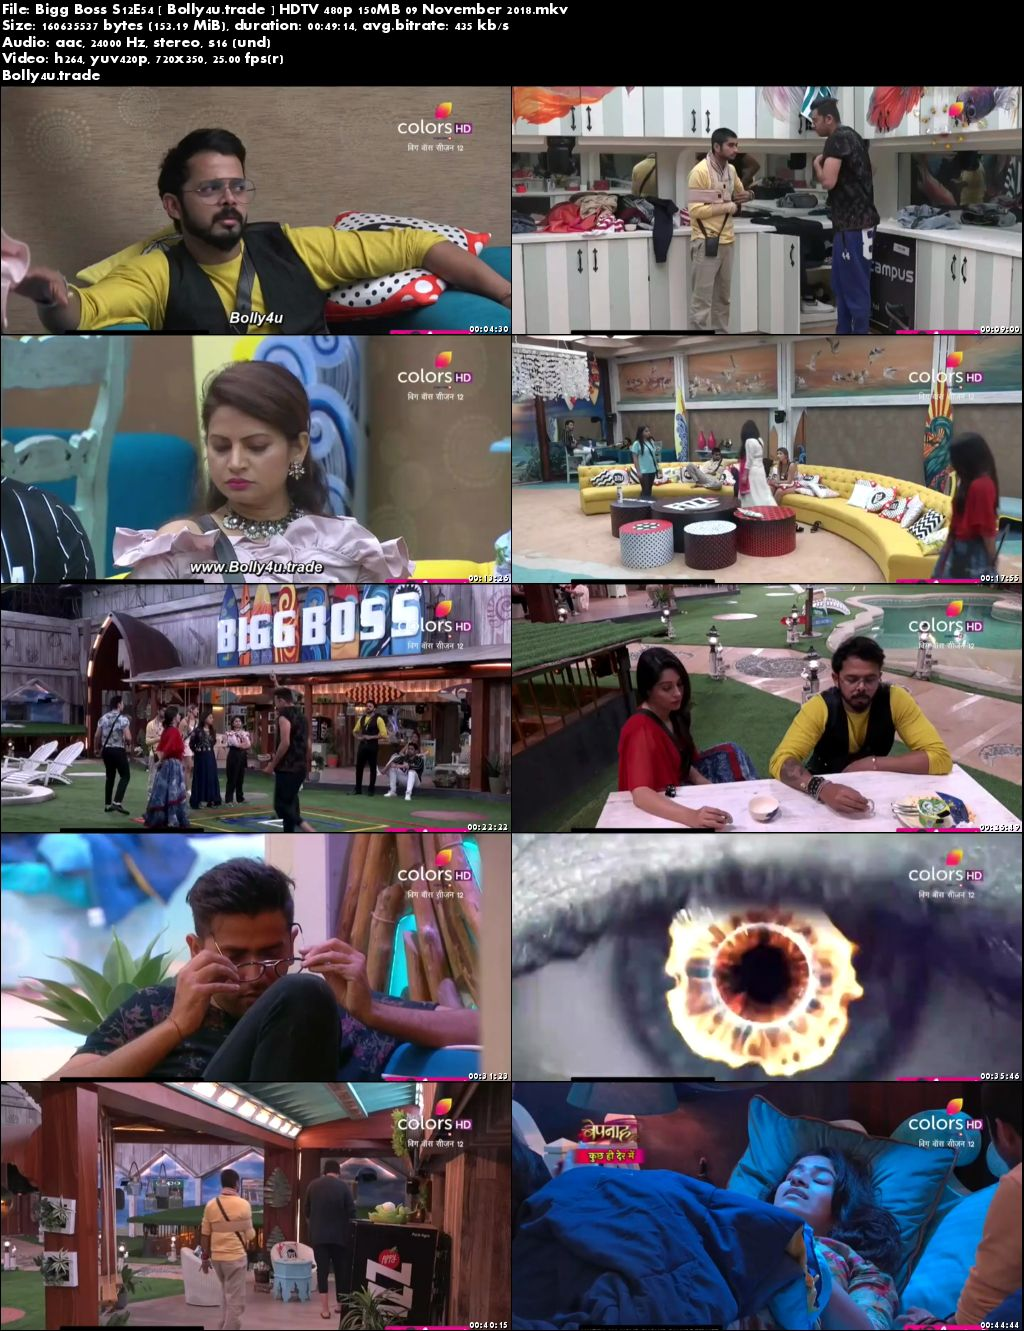 Bigg Boss S12E54 HDTV 480p 150Mb 09 November 2018 Download